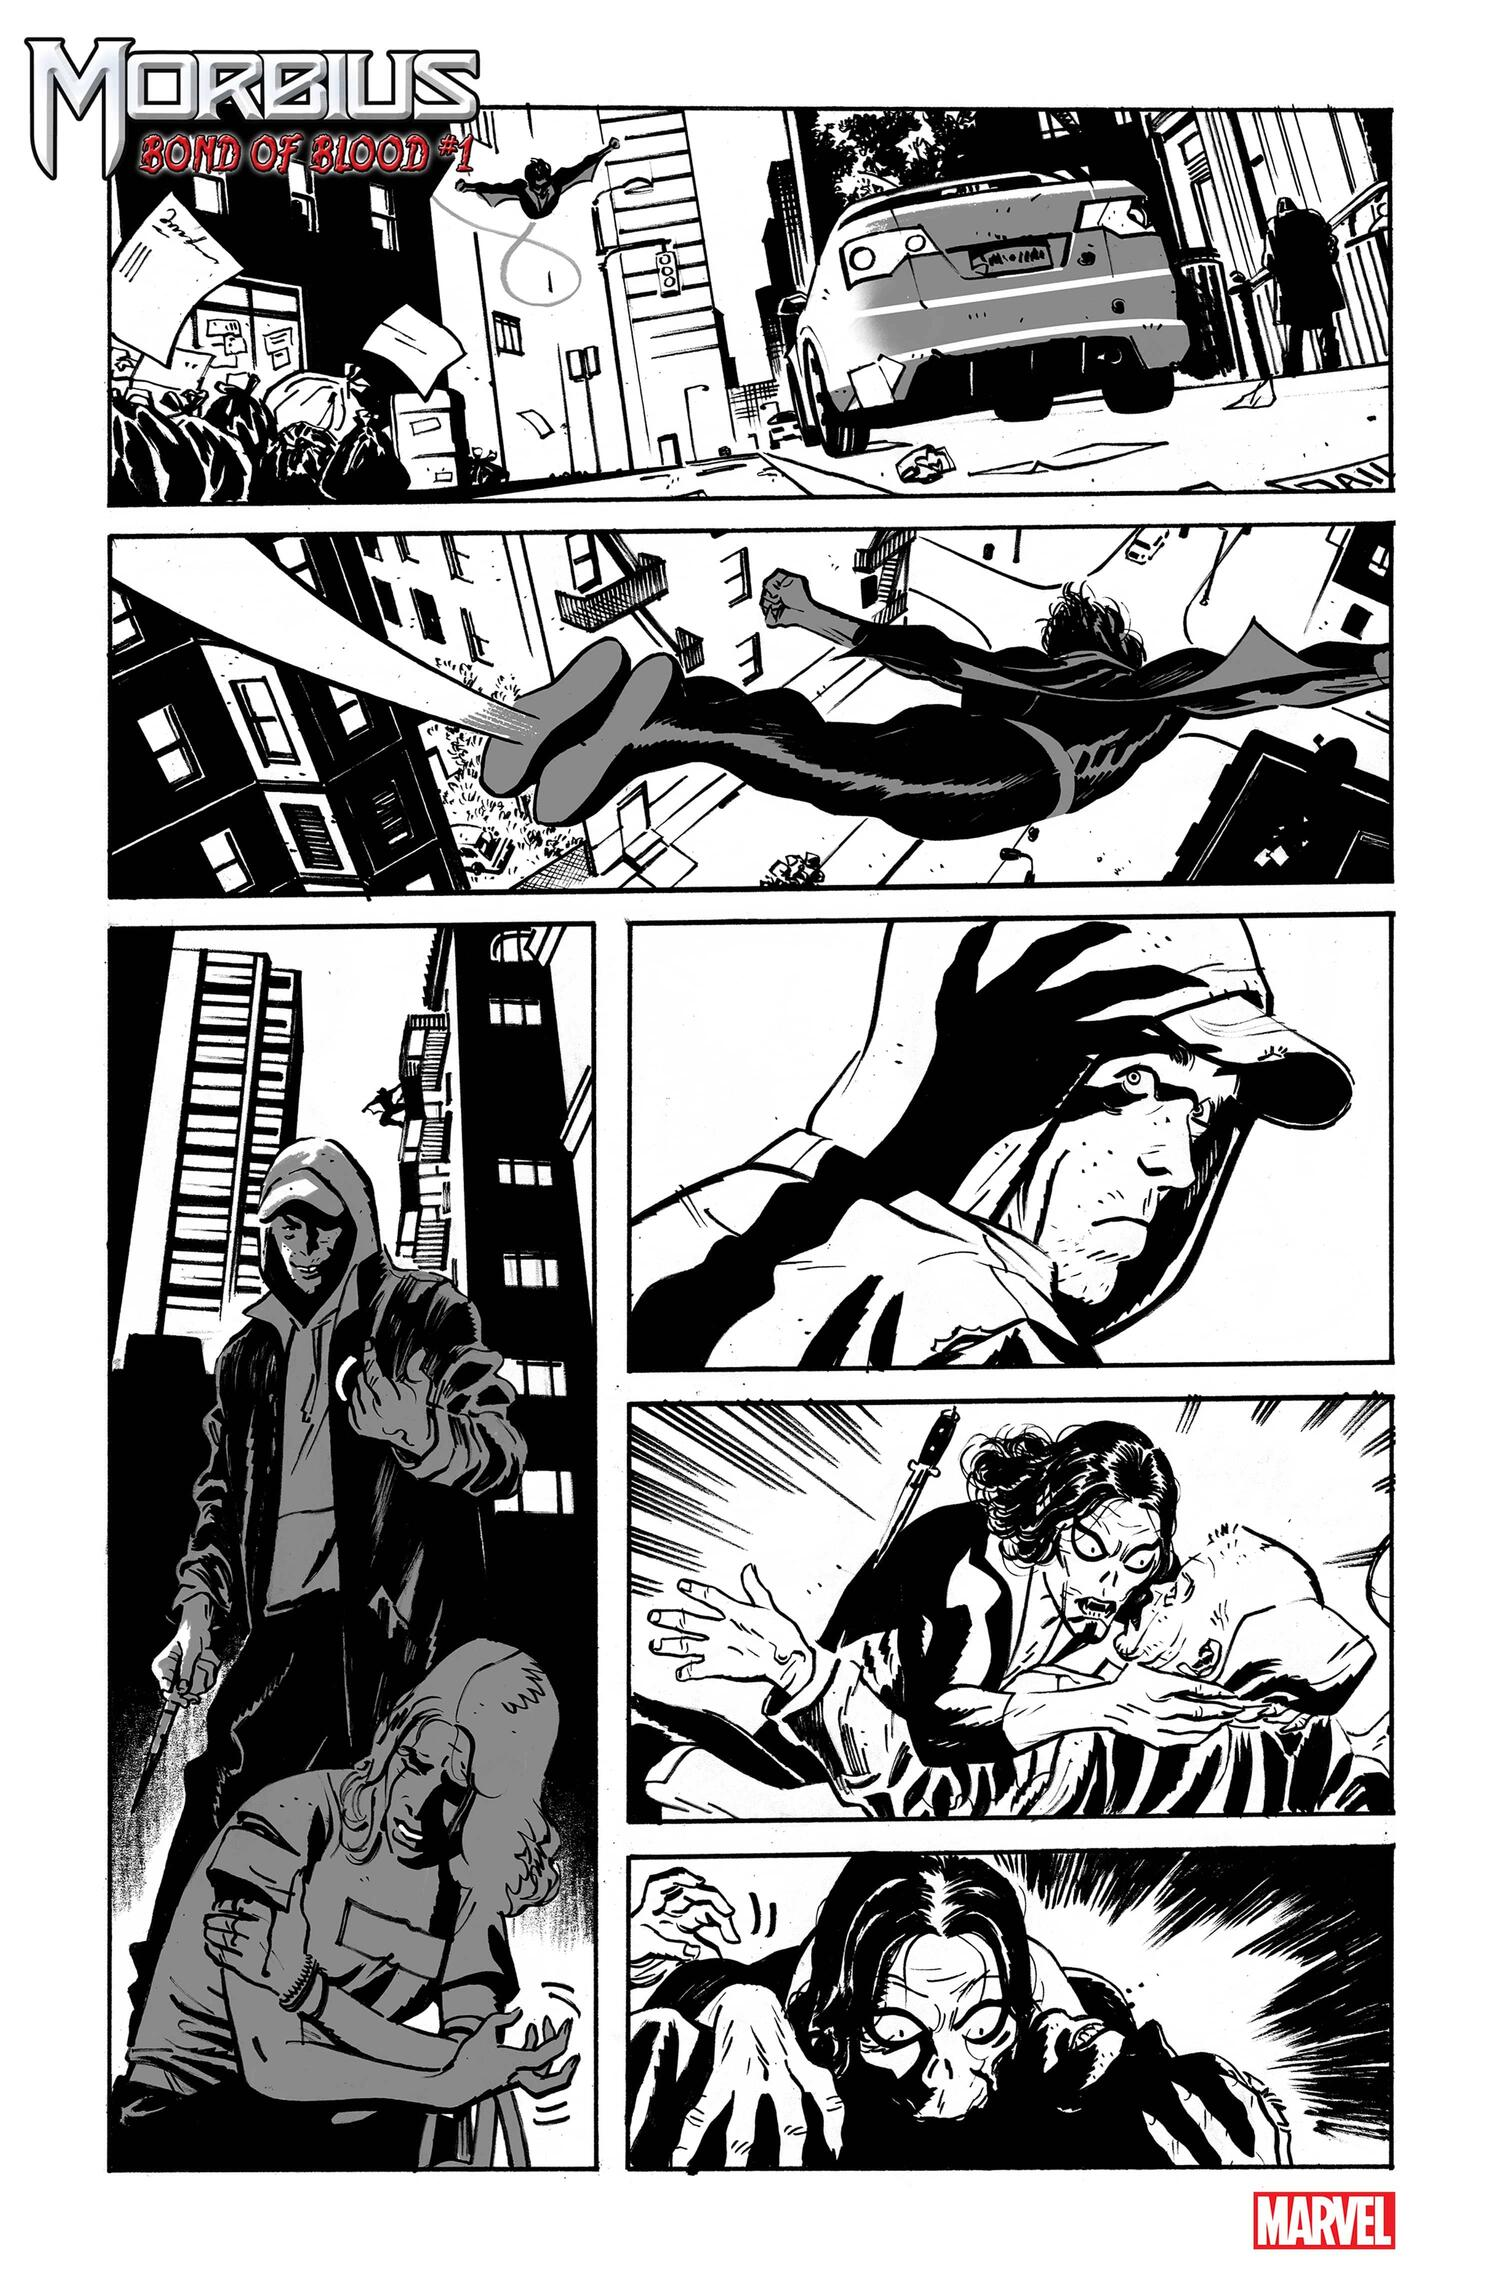 MORBIUS: BOND OF BLOOD #1 preview art by Tom Reilly